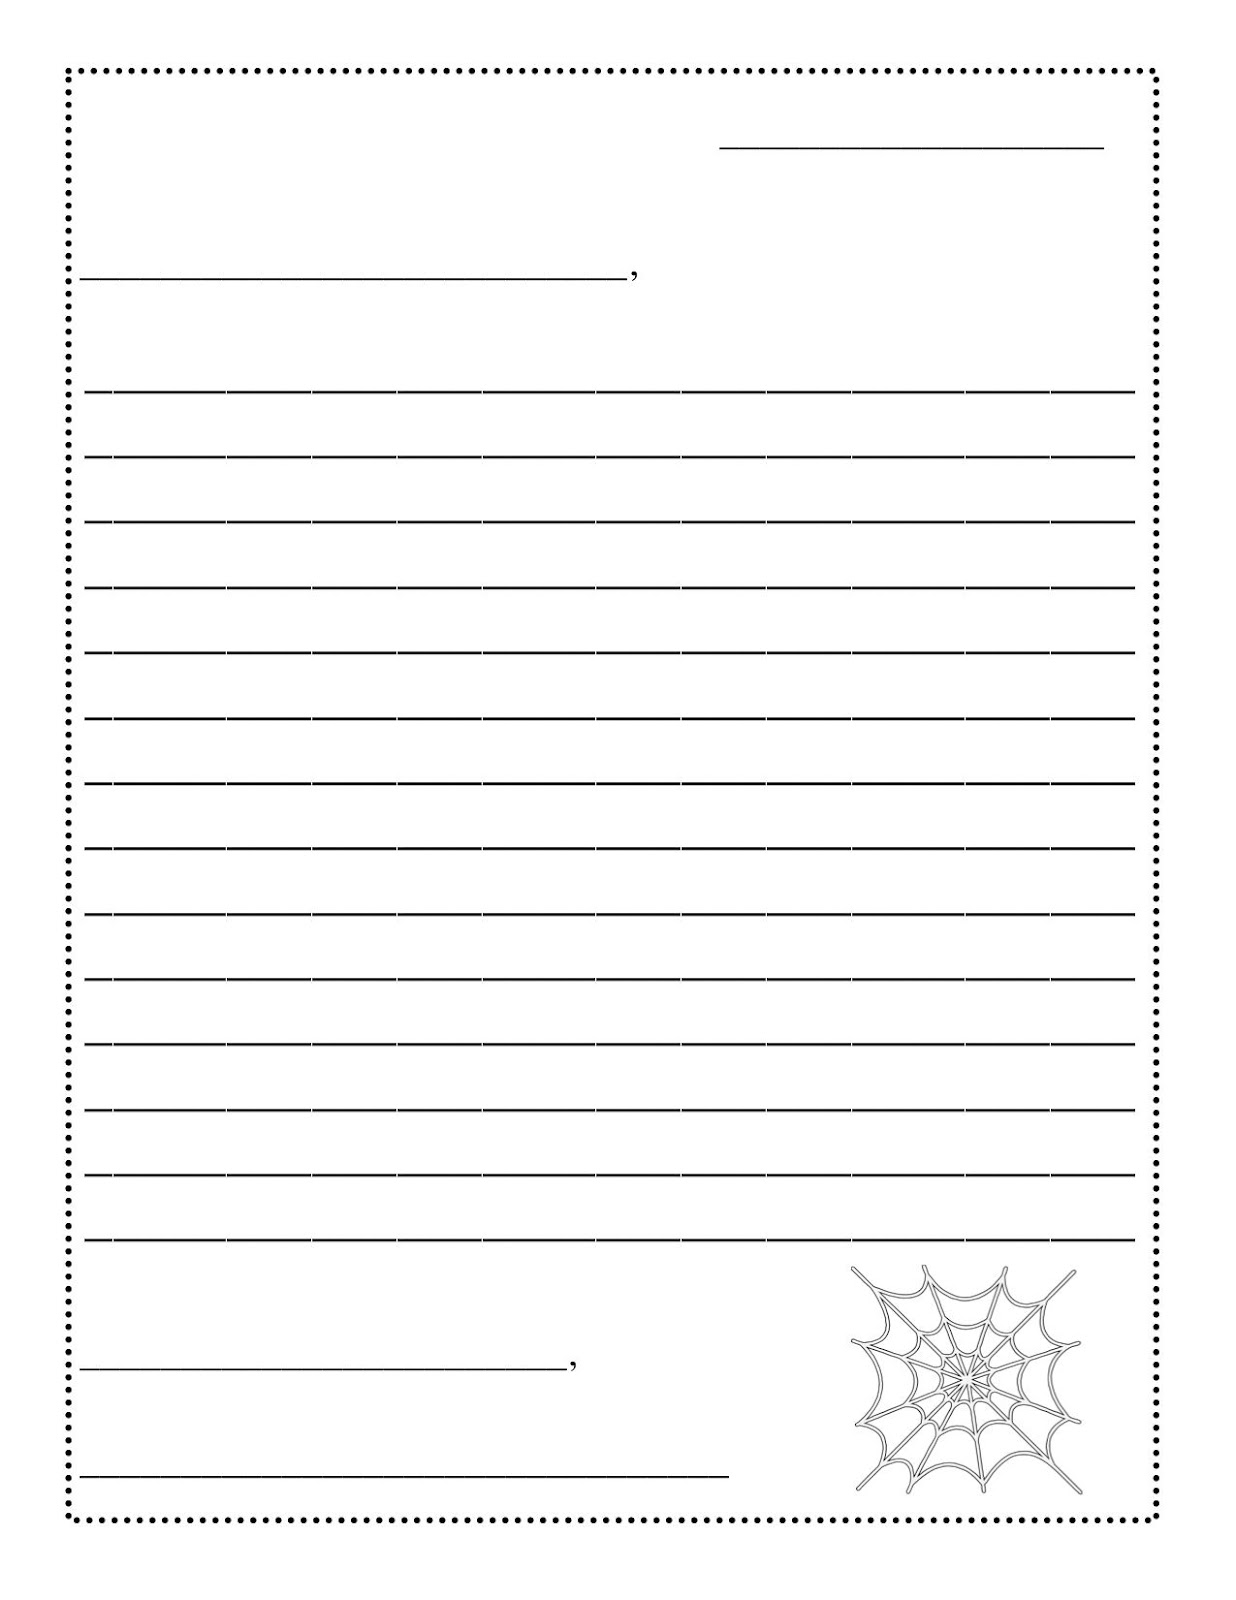 friendly letter writing worksheets for 2nd grade how to write a friendly letter first grade. Black Bedroom Furniture Sets. Home Design Ideas